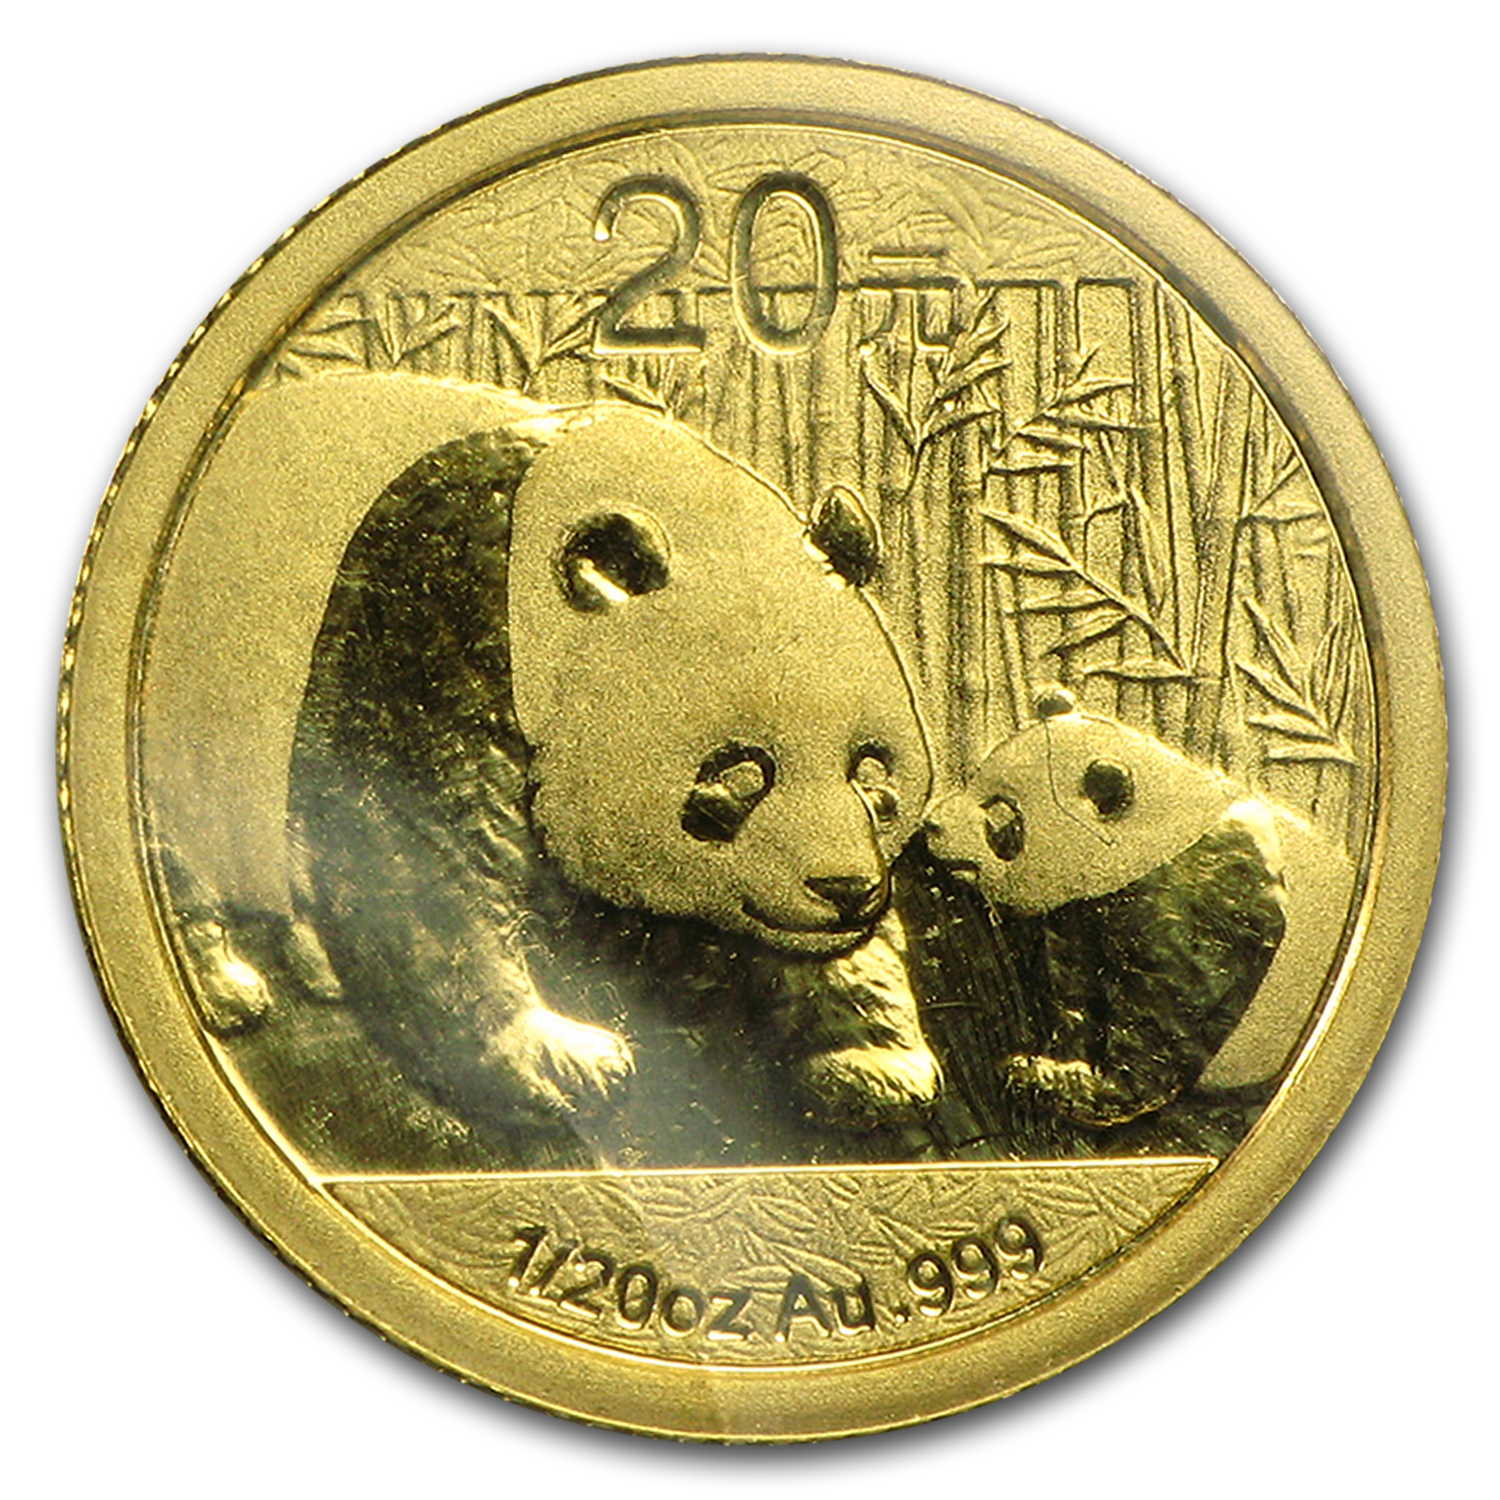 2011 China 1/20 oz Gold Panda BU (Sealed)